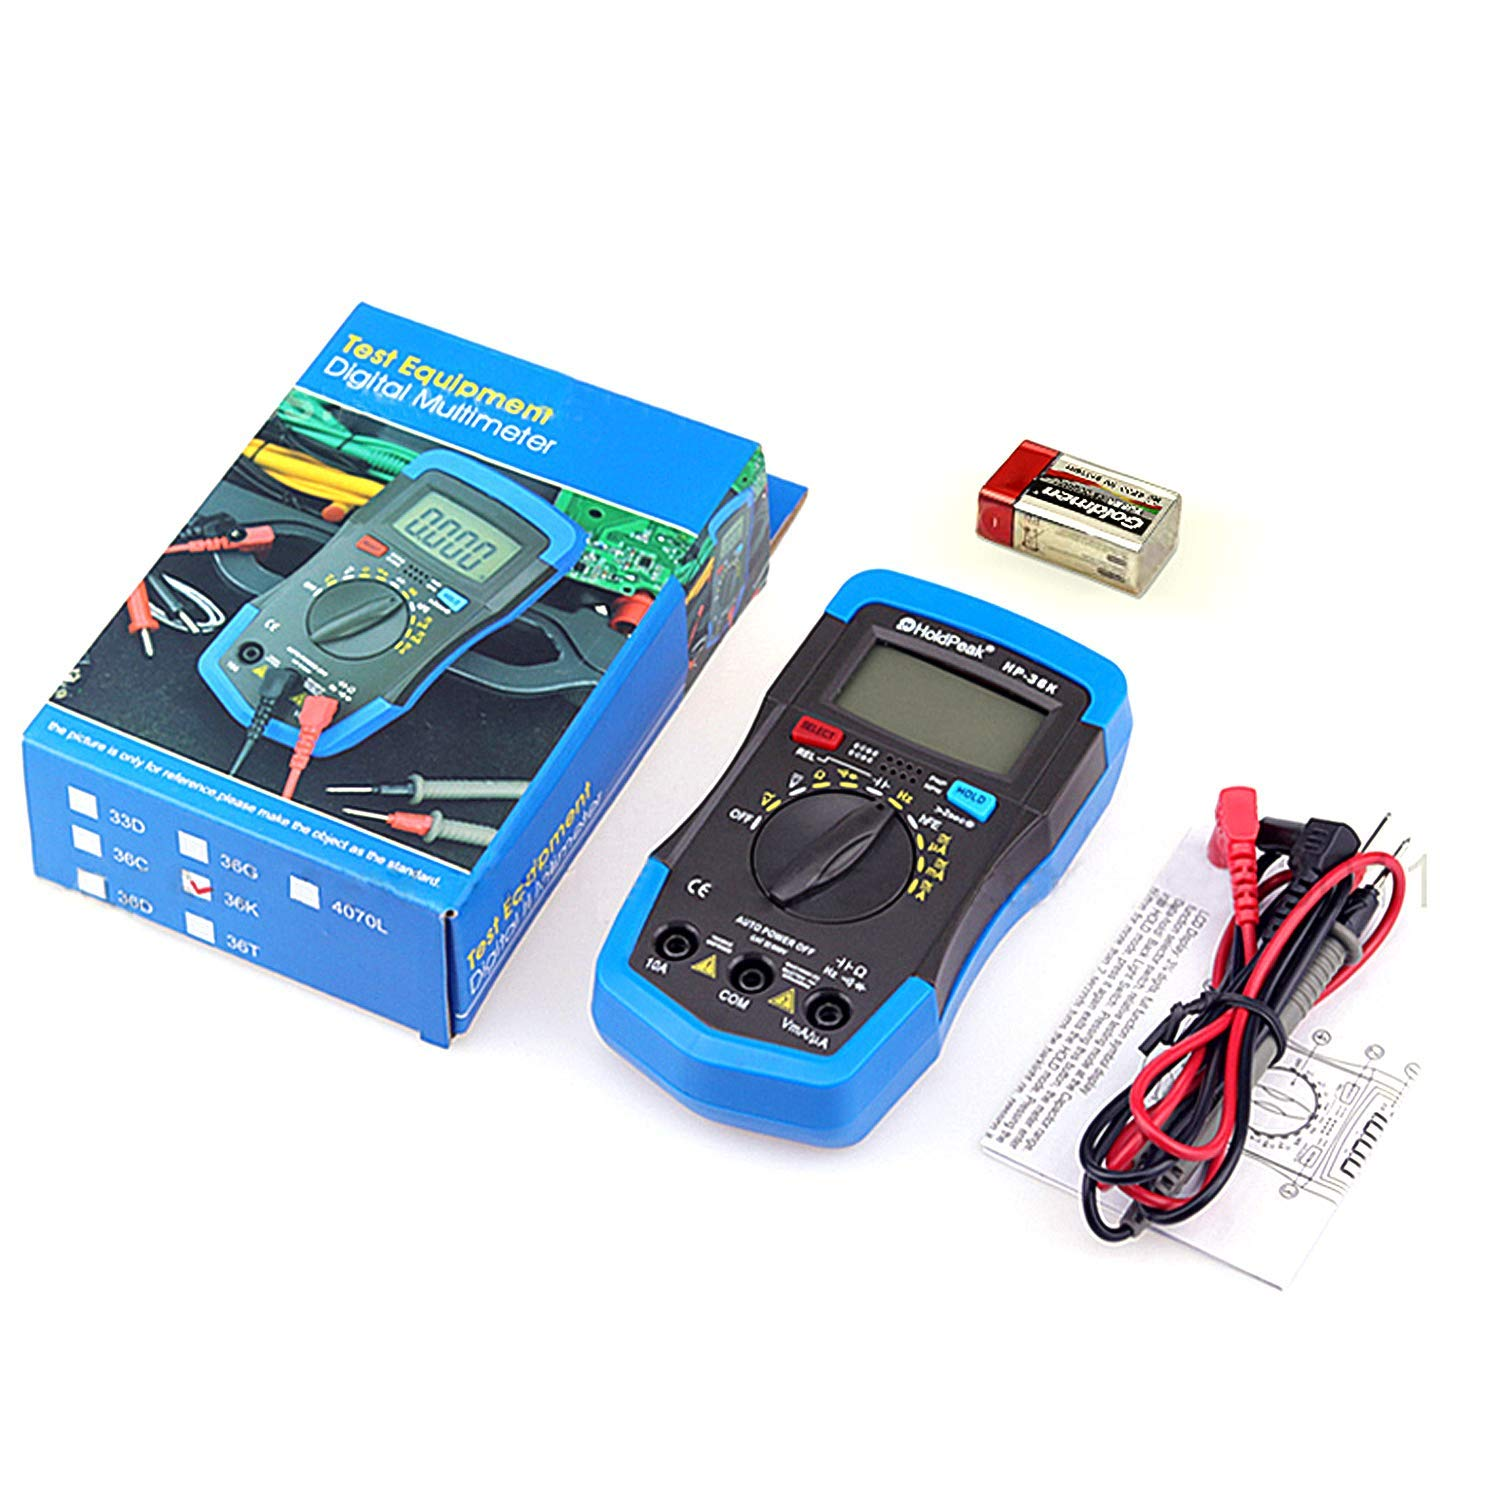 Holdpeak 36K Digital Multimeter Electronic Amp Volt Ohm Multi Meter Auto Range 4000 Counts with AC//DC voltage /& Current Capacitance Frequency Diode hFE test with LCD Backlit